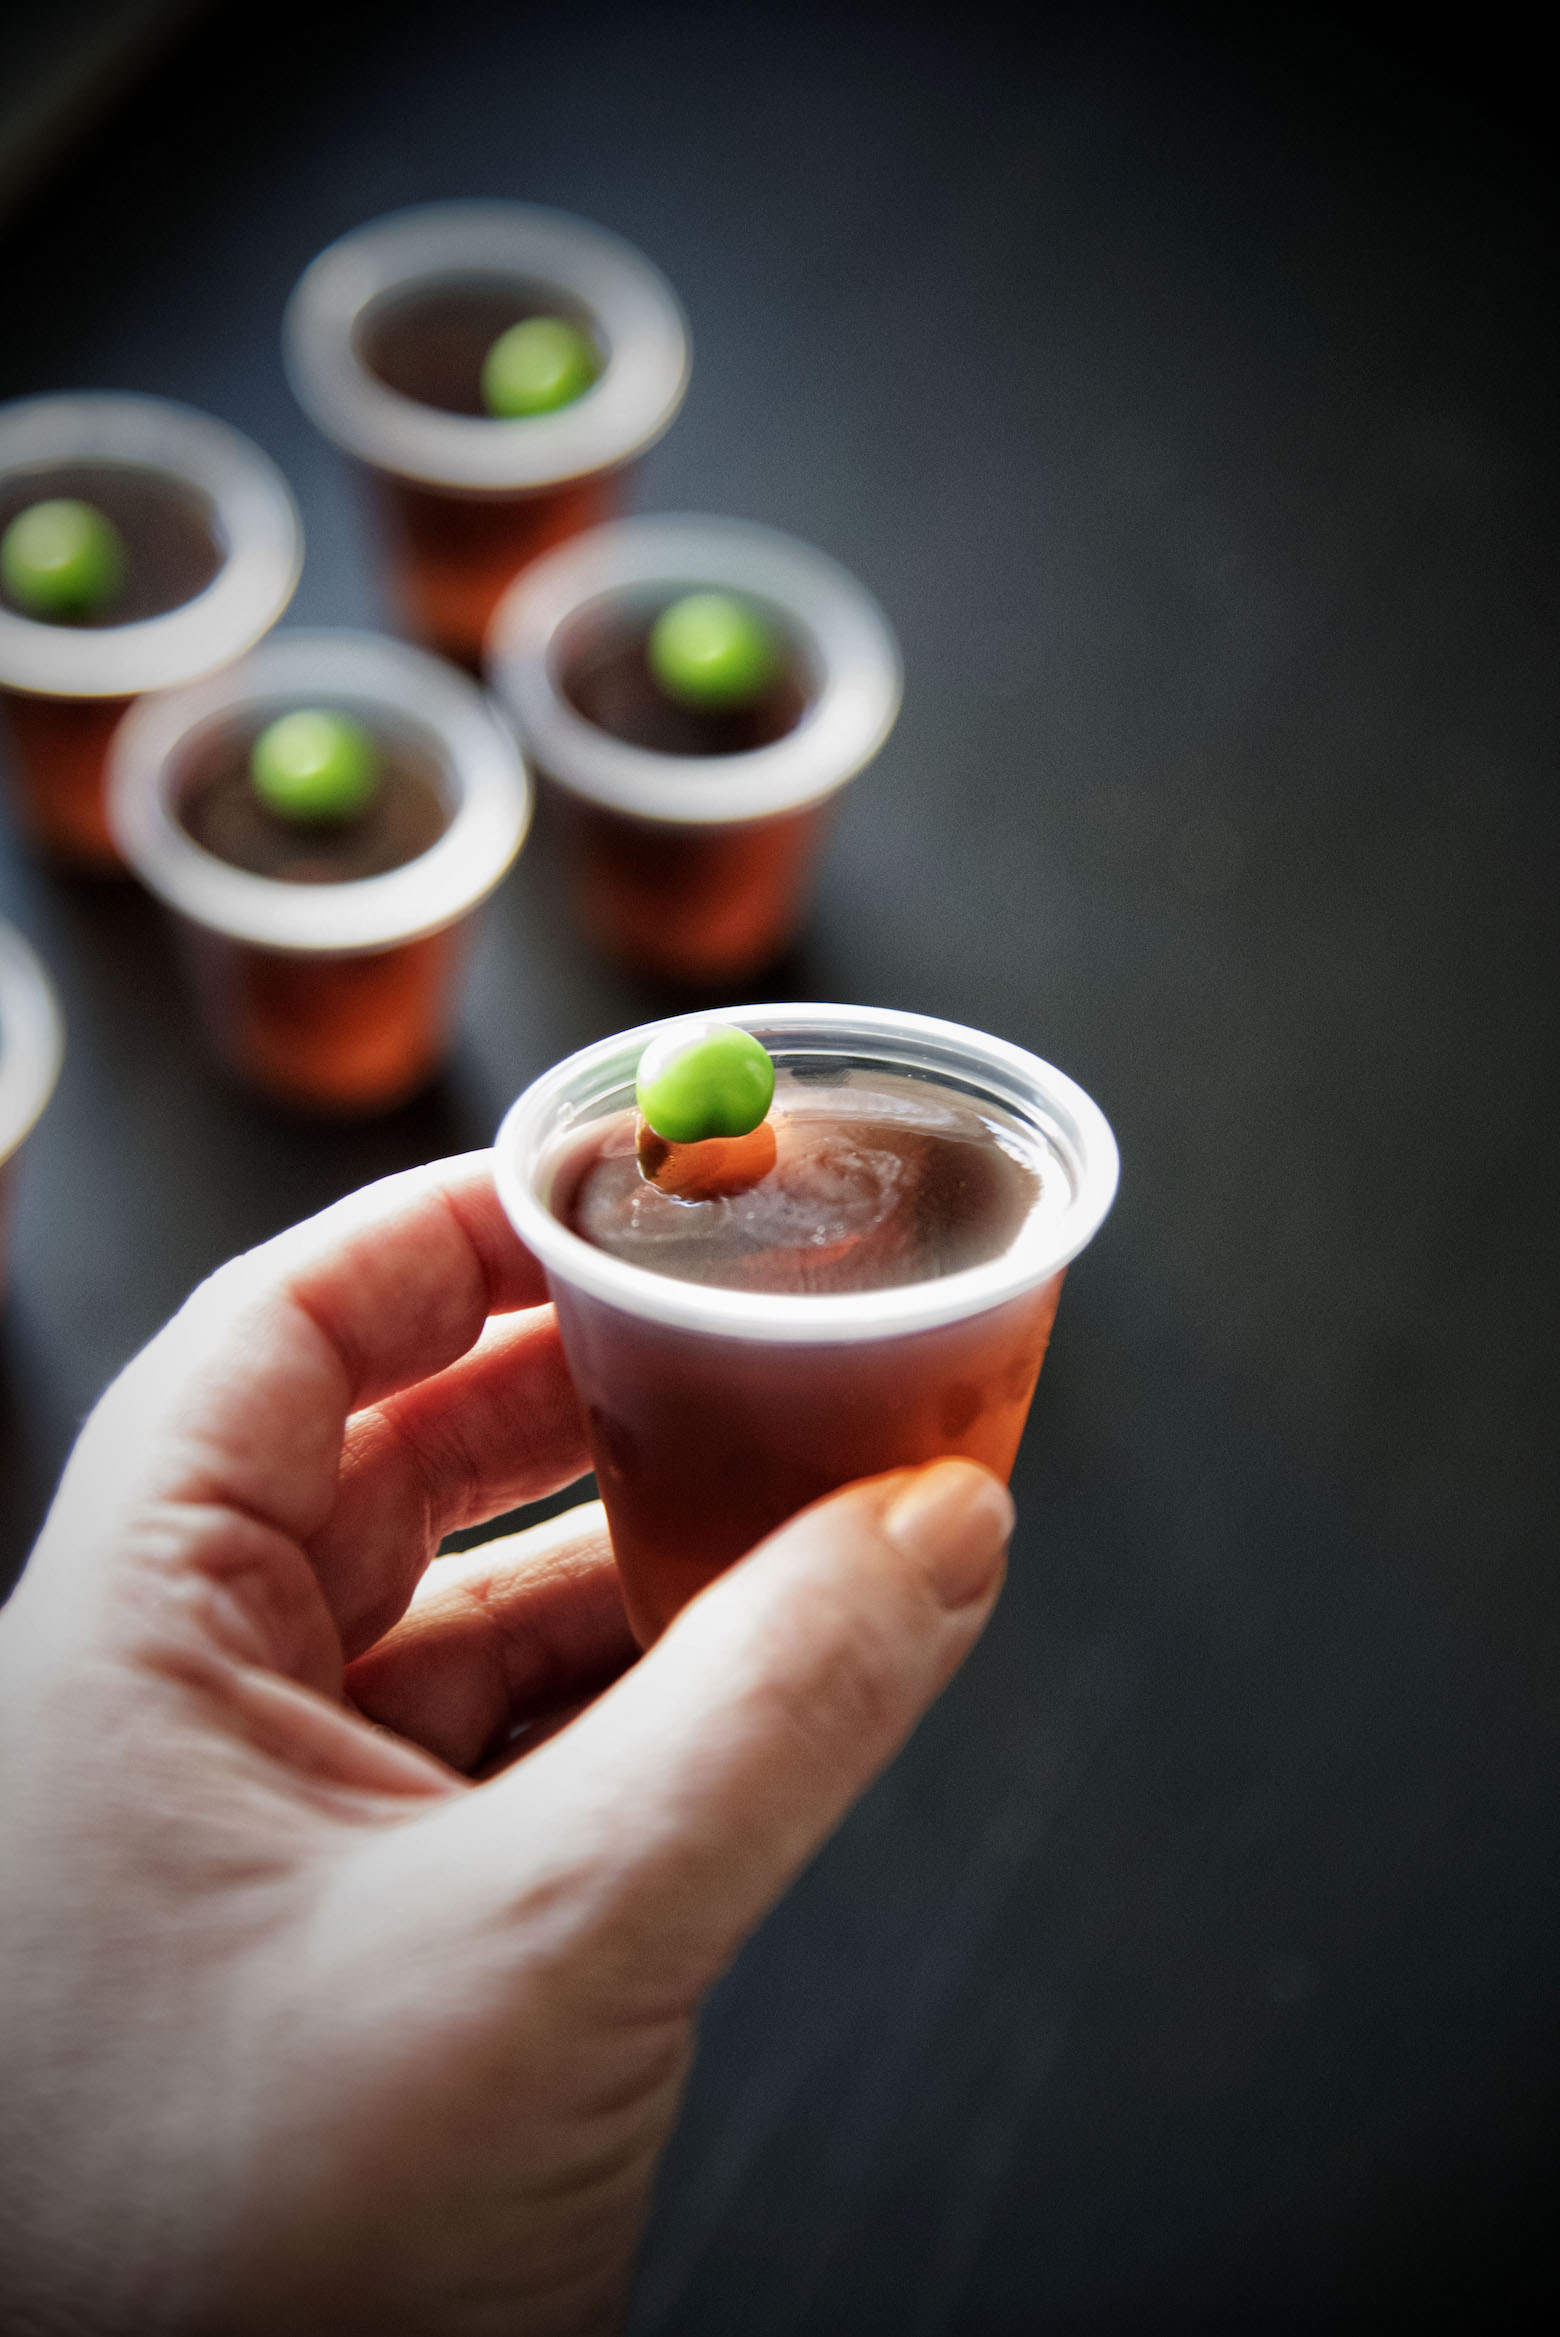 Washington Apple Jell-O Shot